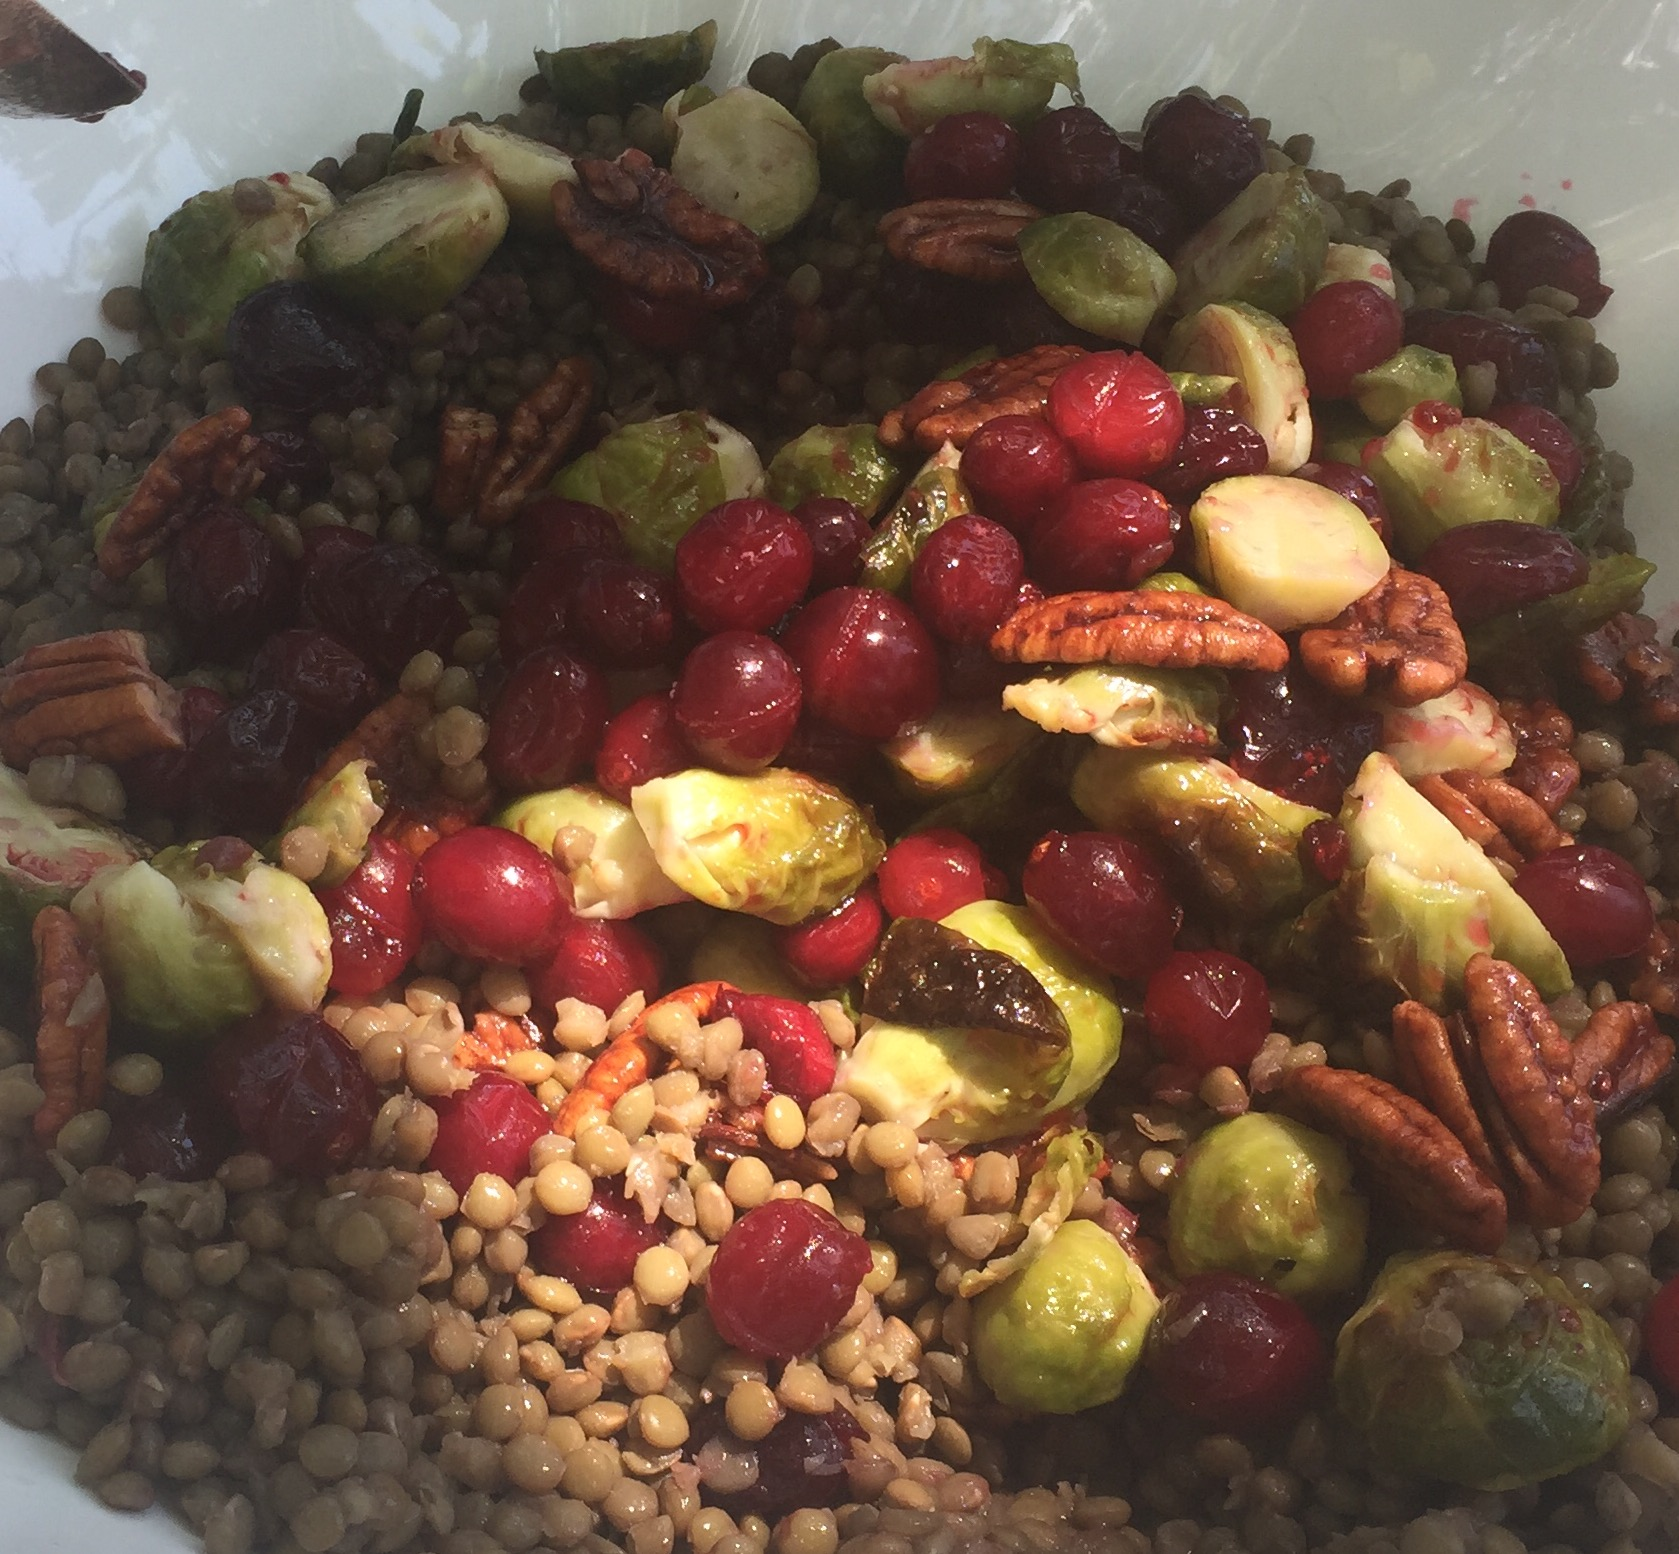 Lentils with Roasted Brussel Sprouts, Cranberries and Candied Pecans